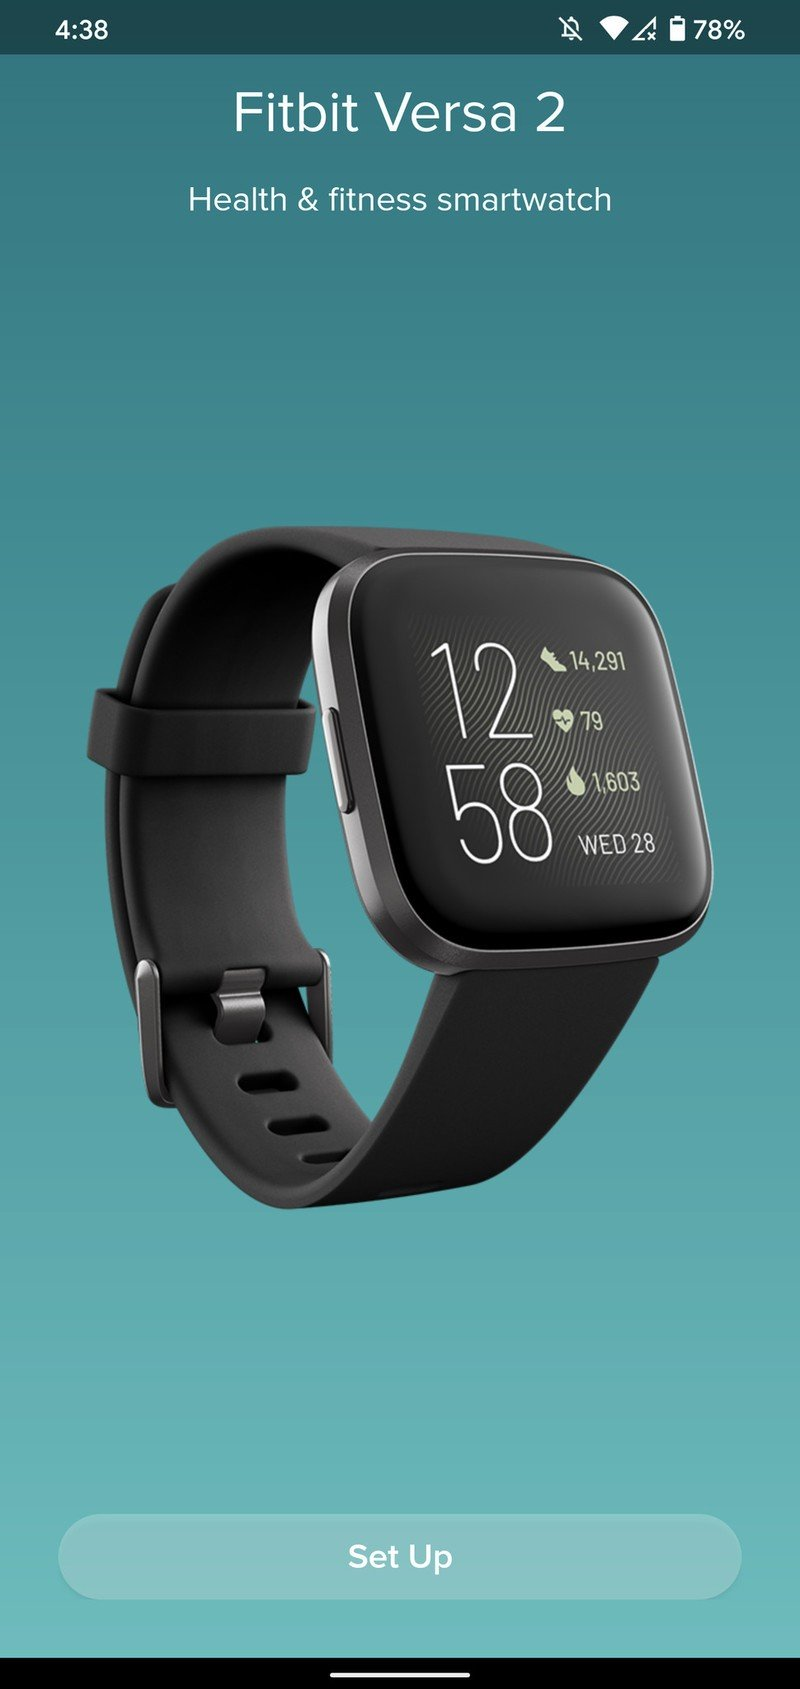 how-set-up-fitbit-versa-2-4.jpg?itok=fPk